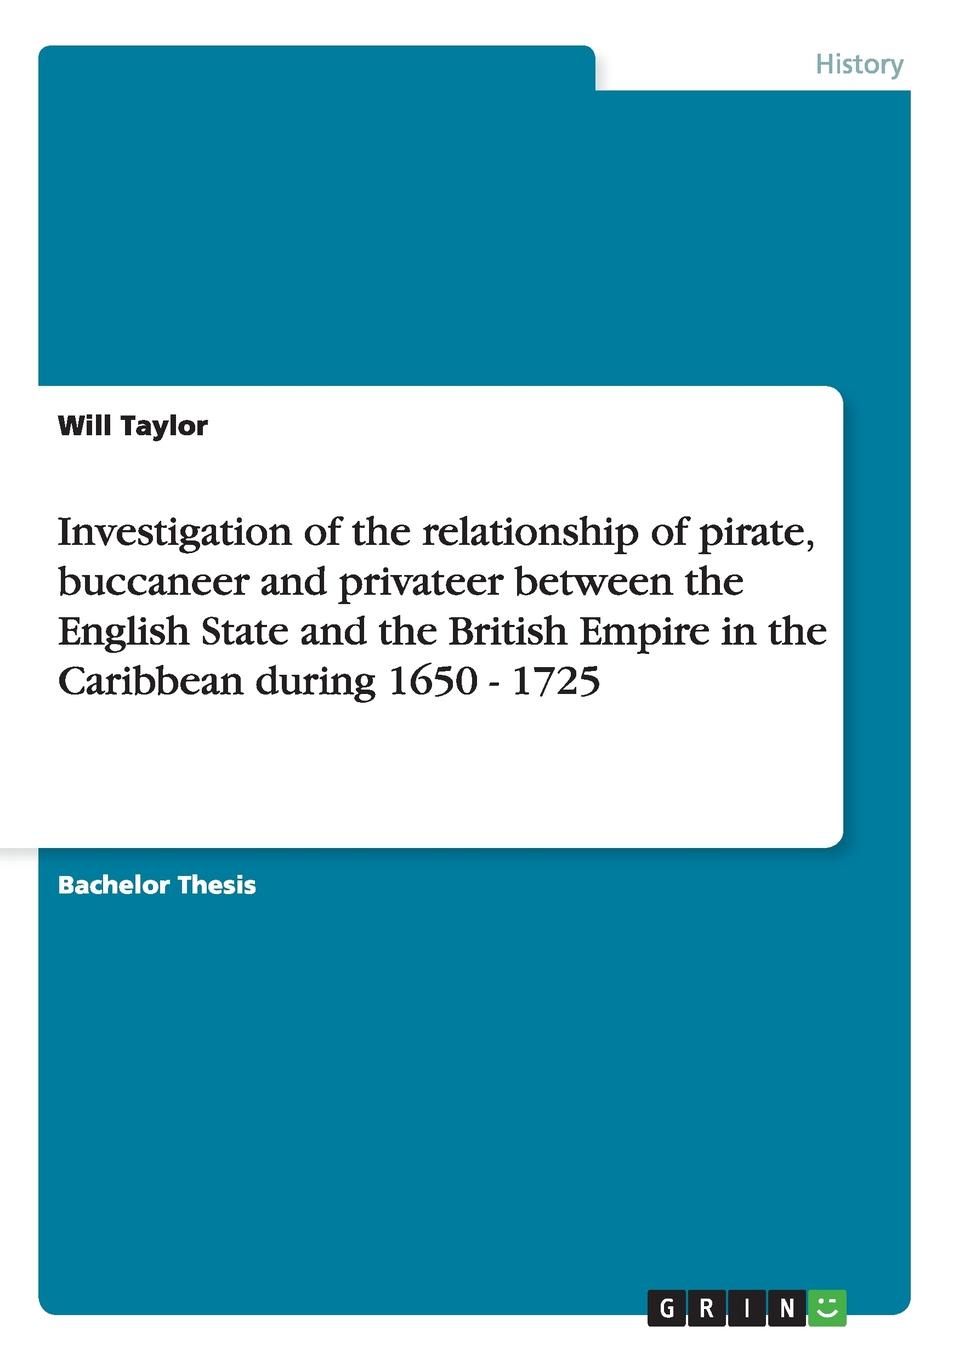 Will Taylor Investigation of the relationship of pirate, buccaneer and privateer between the English State and the British Empire in the Caribbean during 1650 - 1725 leah dennison do i look funny in this an investigation into the perception and representation of female comedians on the stand up circuit and their audiences